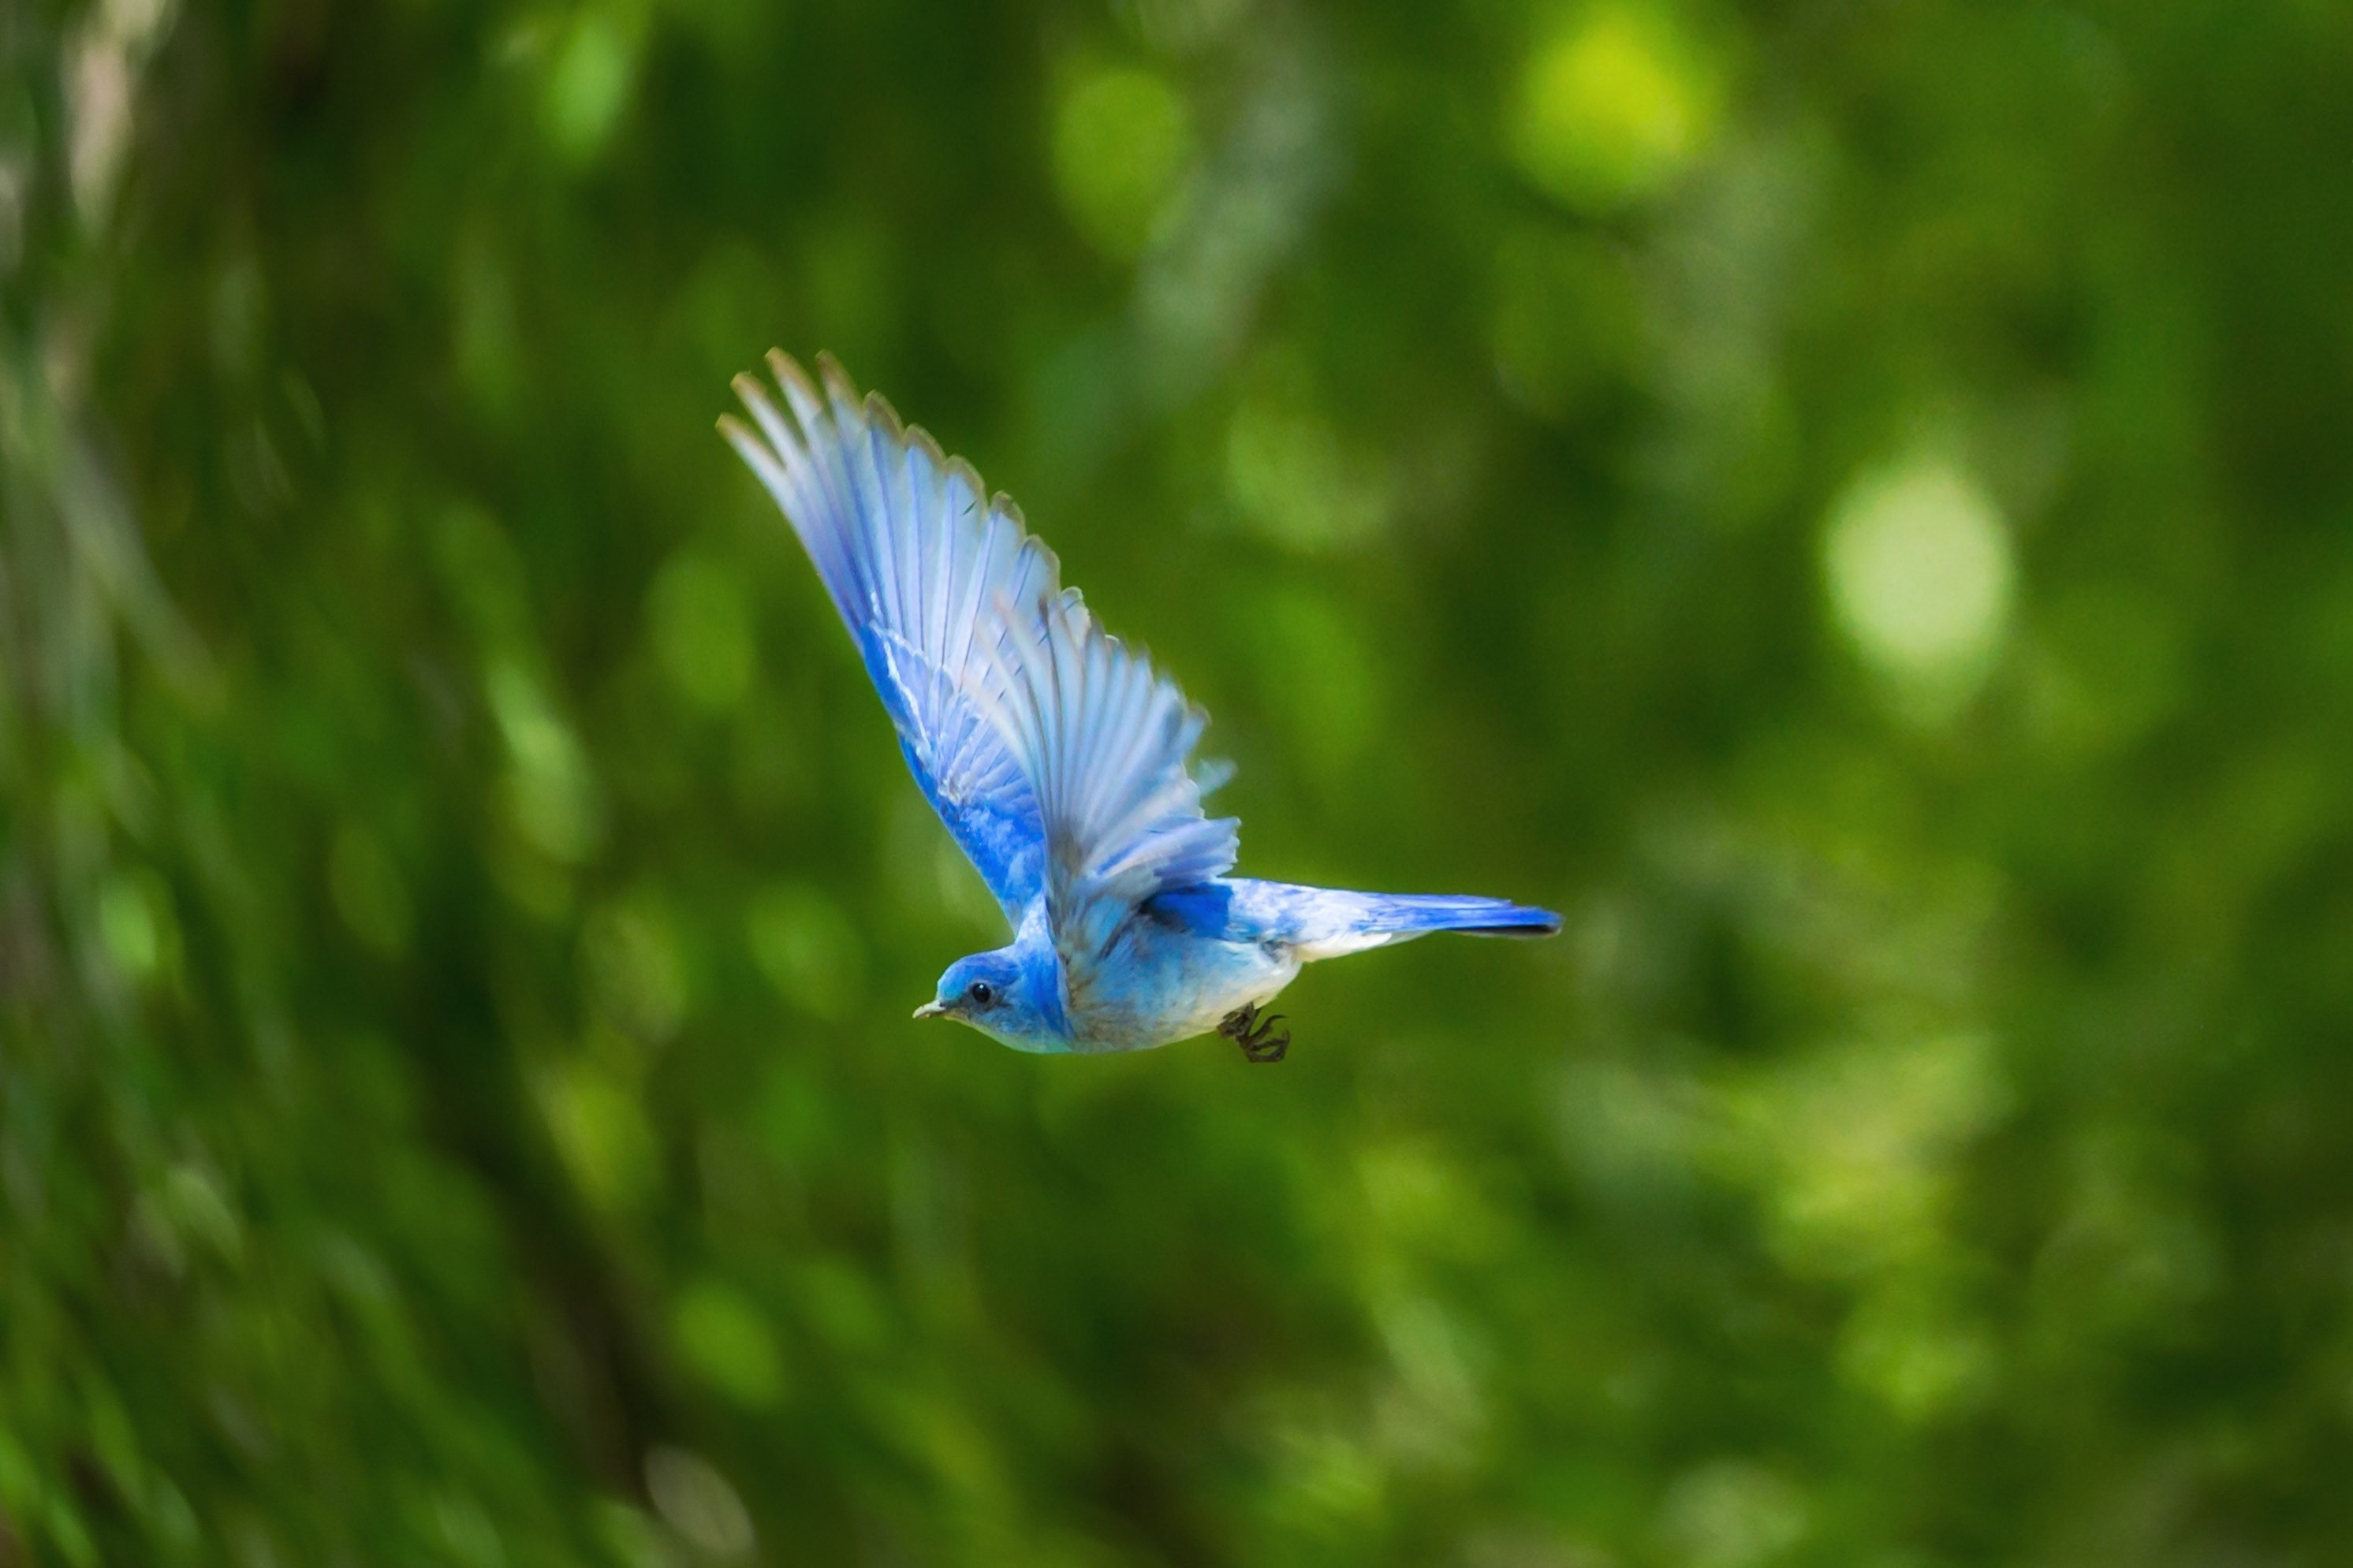 A Flying Blue Bird Hd Wallpaper